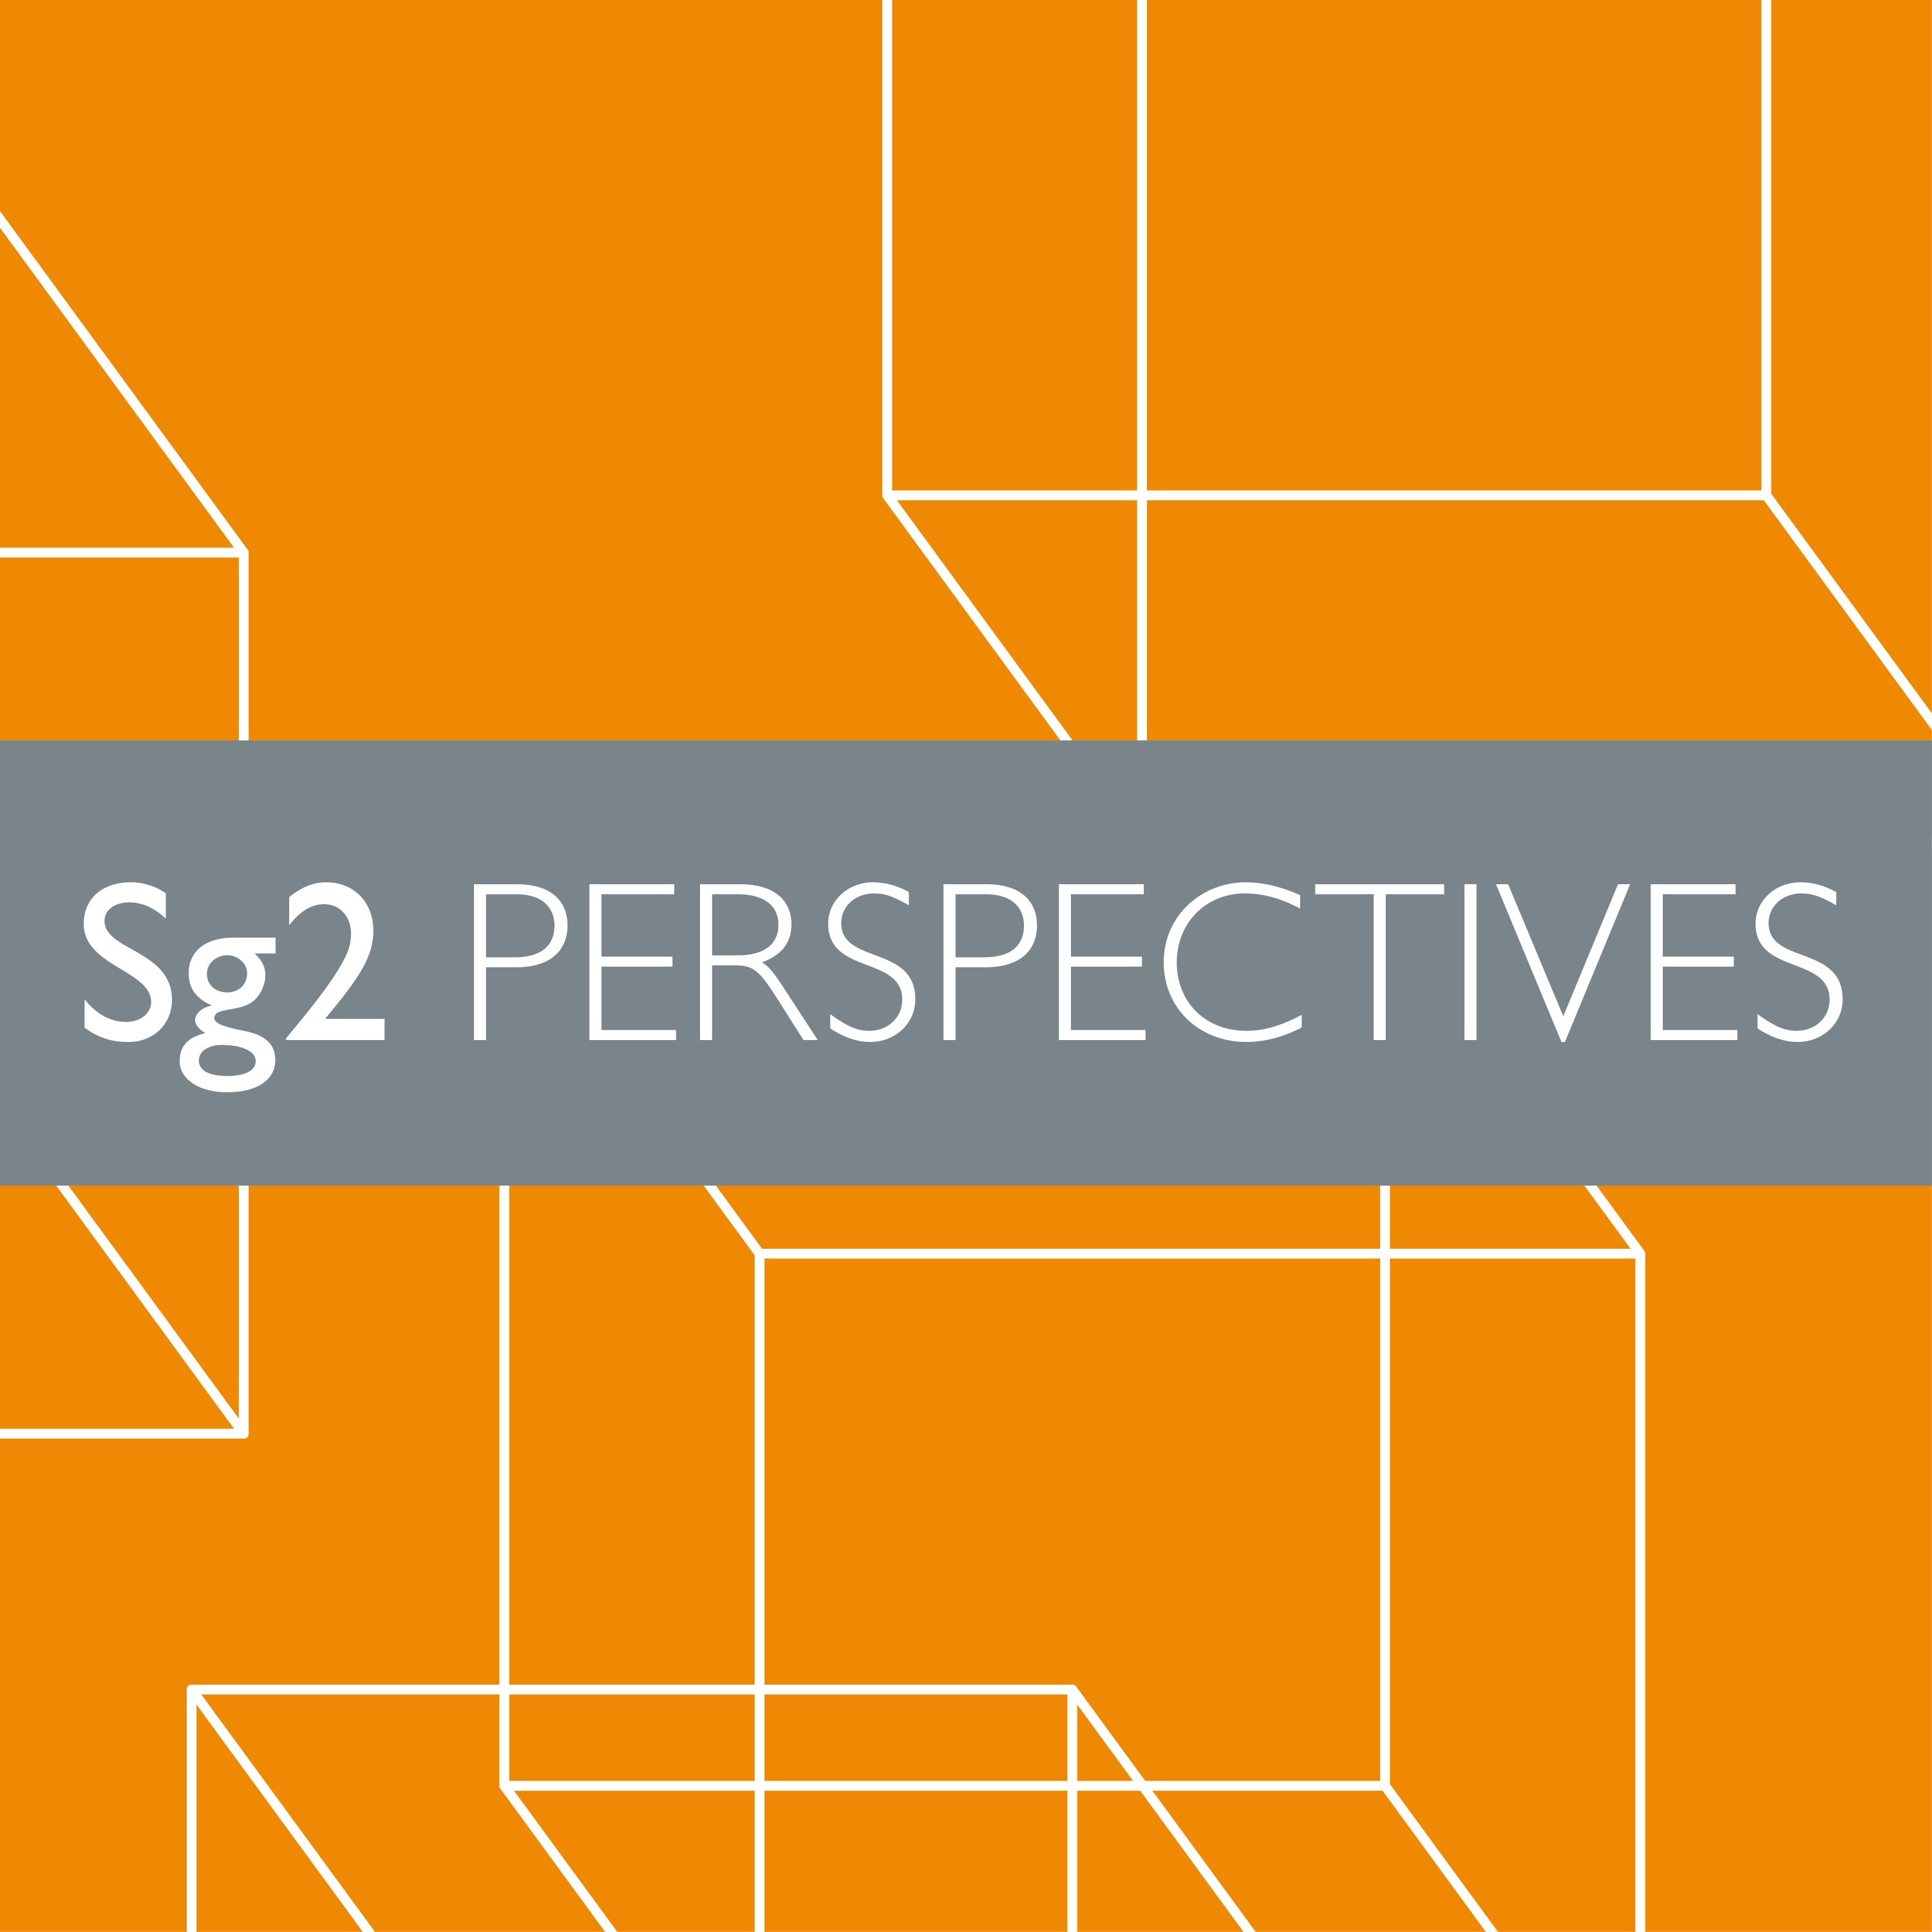 Sg2 Perspectives: Virtual Health trends